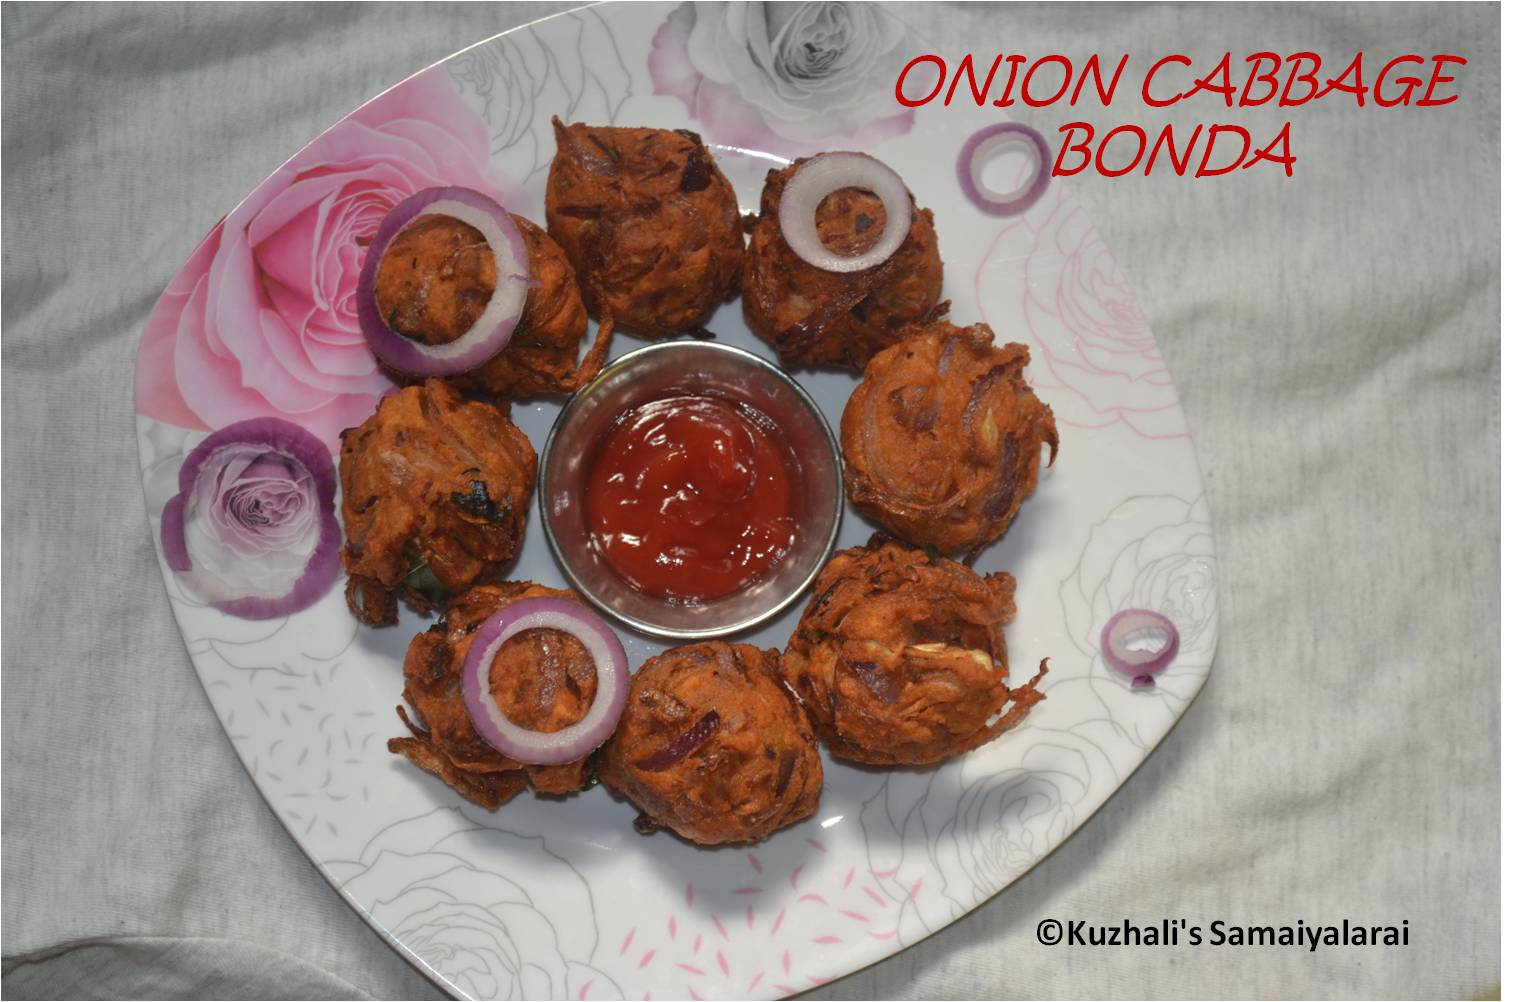 Kuzhali S Samaiyalarai Onion Cabbage Bonda Tea Time Snack Recipe